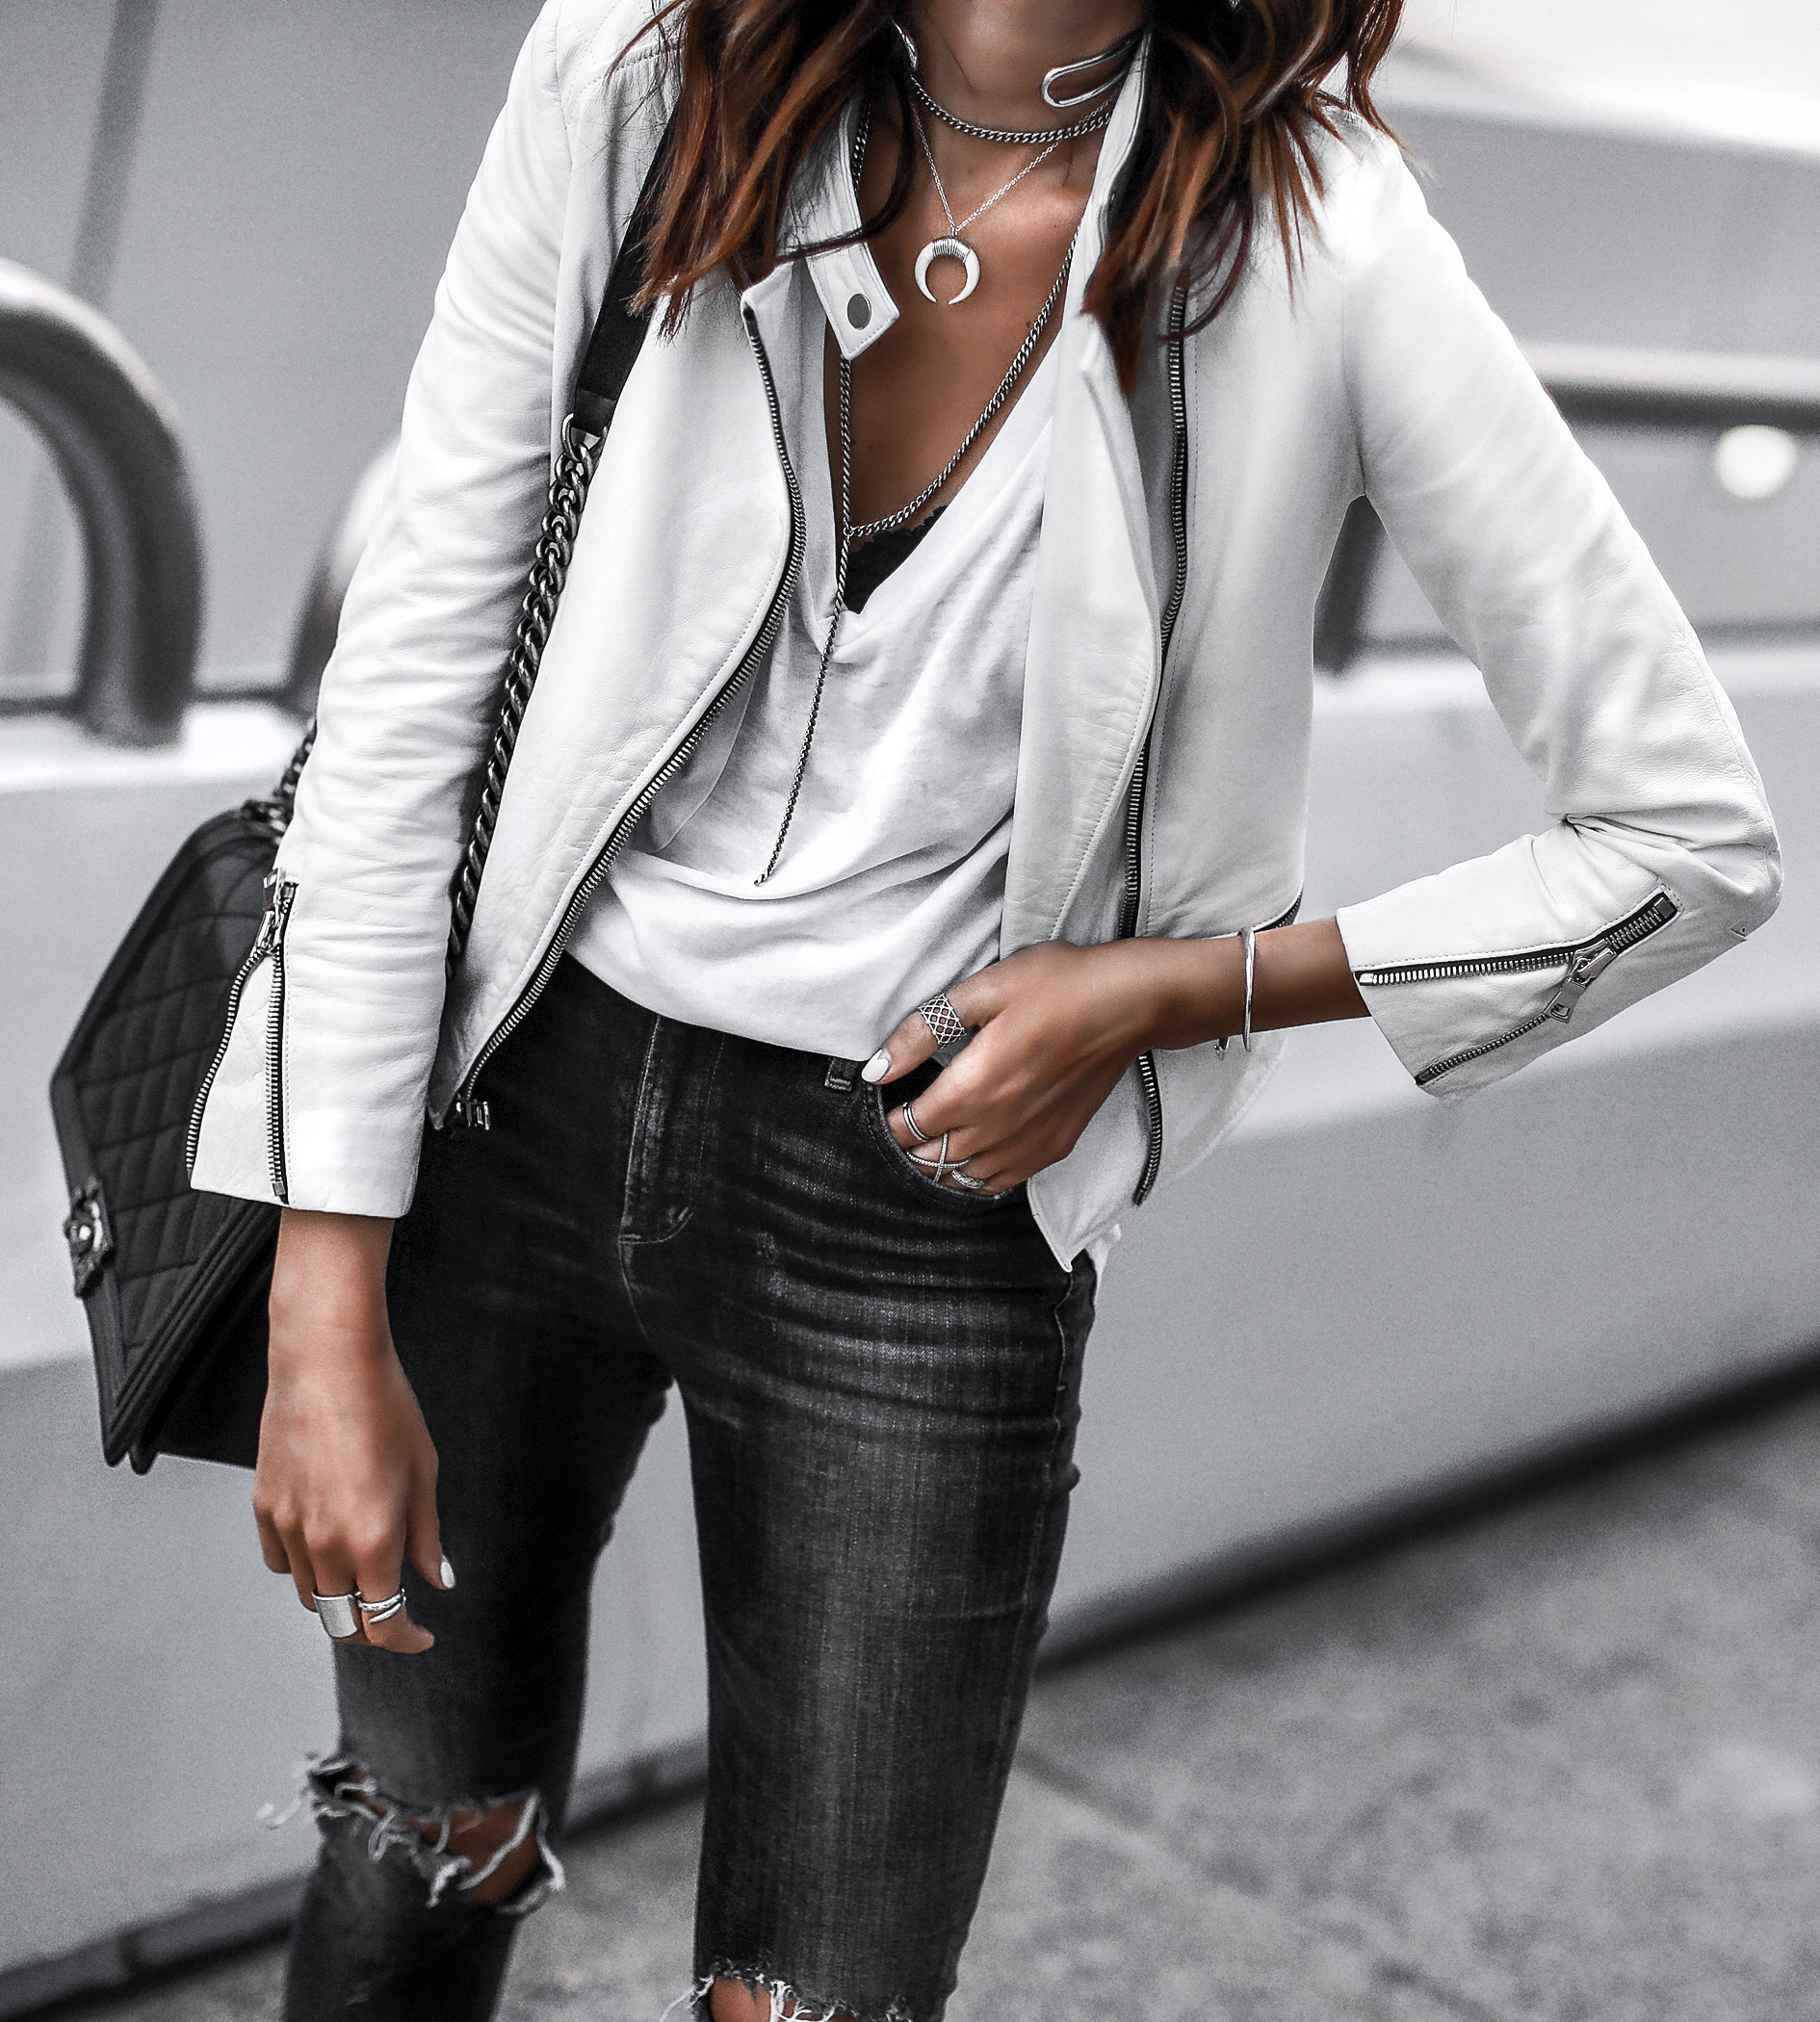 white leather jacket, white tee, layered necklaces, ripped skinny jeans, chanel bag